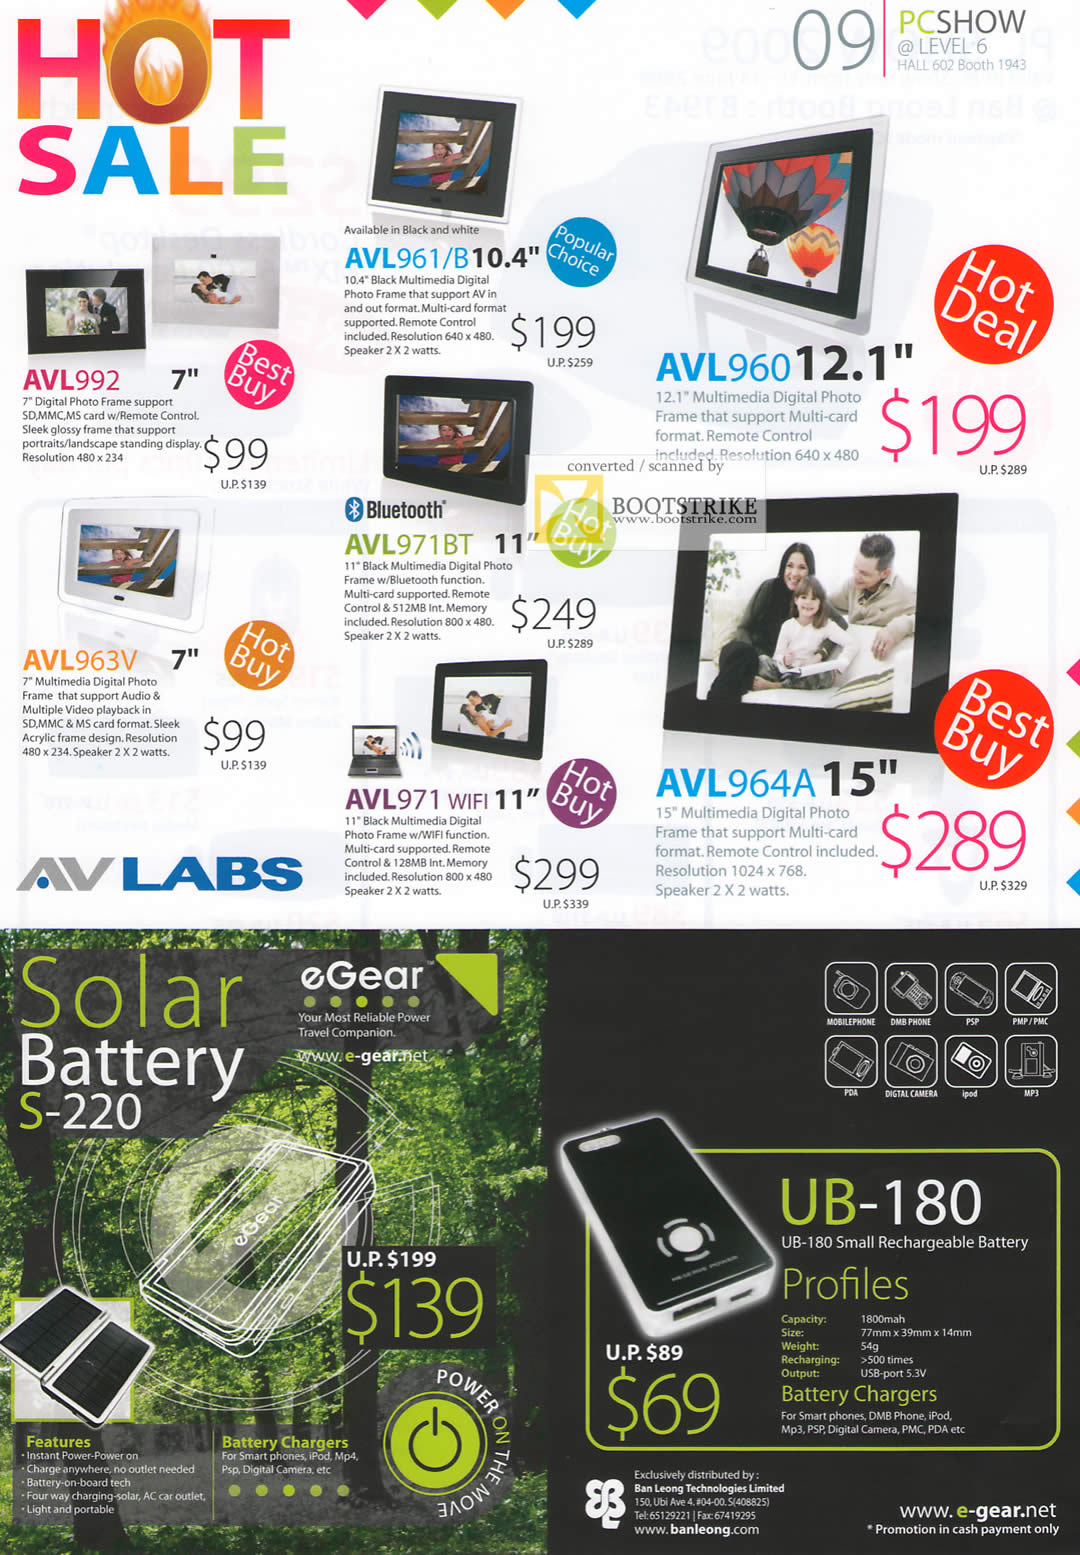 PC Show 2009 price list image brochure of AVLabs Digital Multimedia Photo Frame EGear Solar Battery